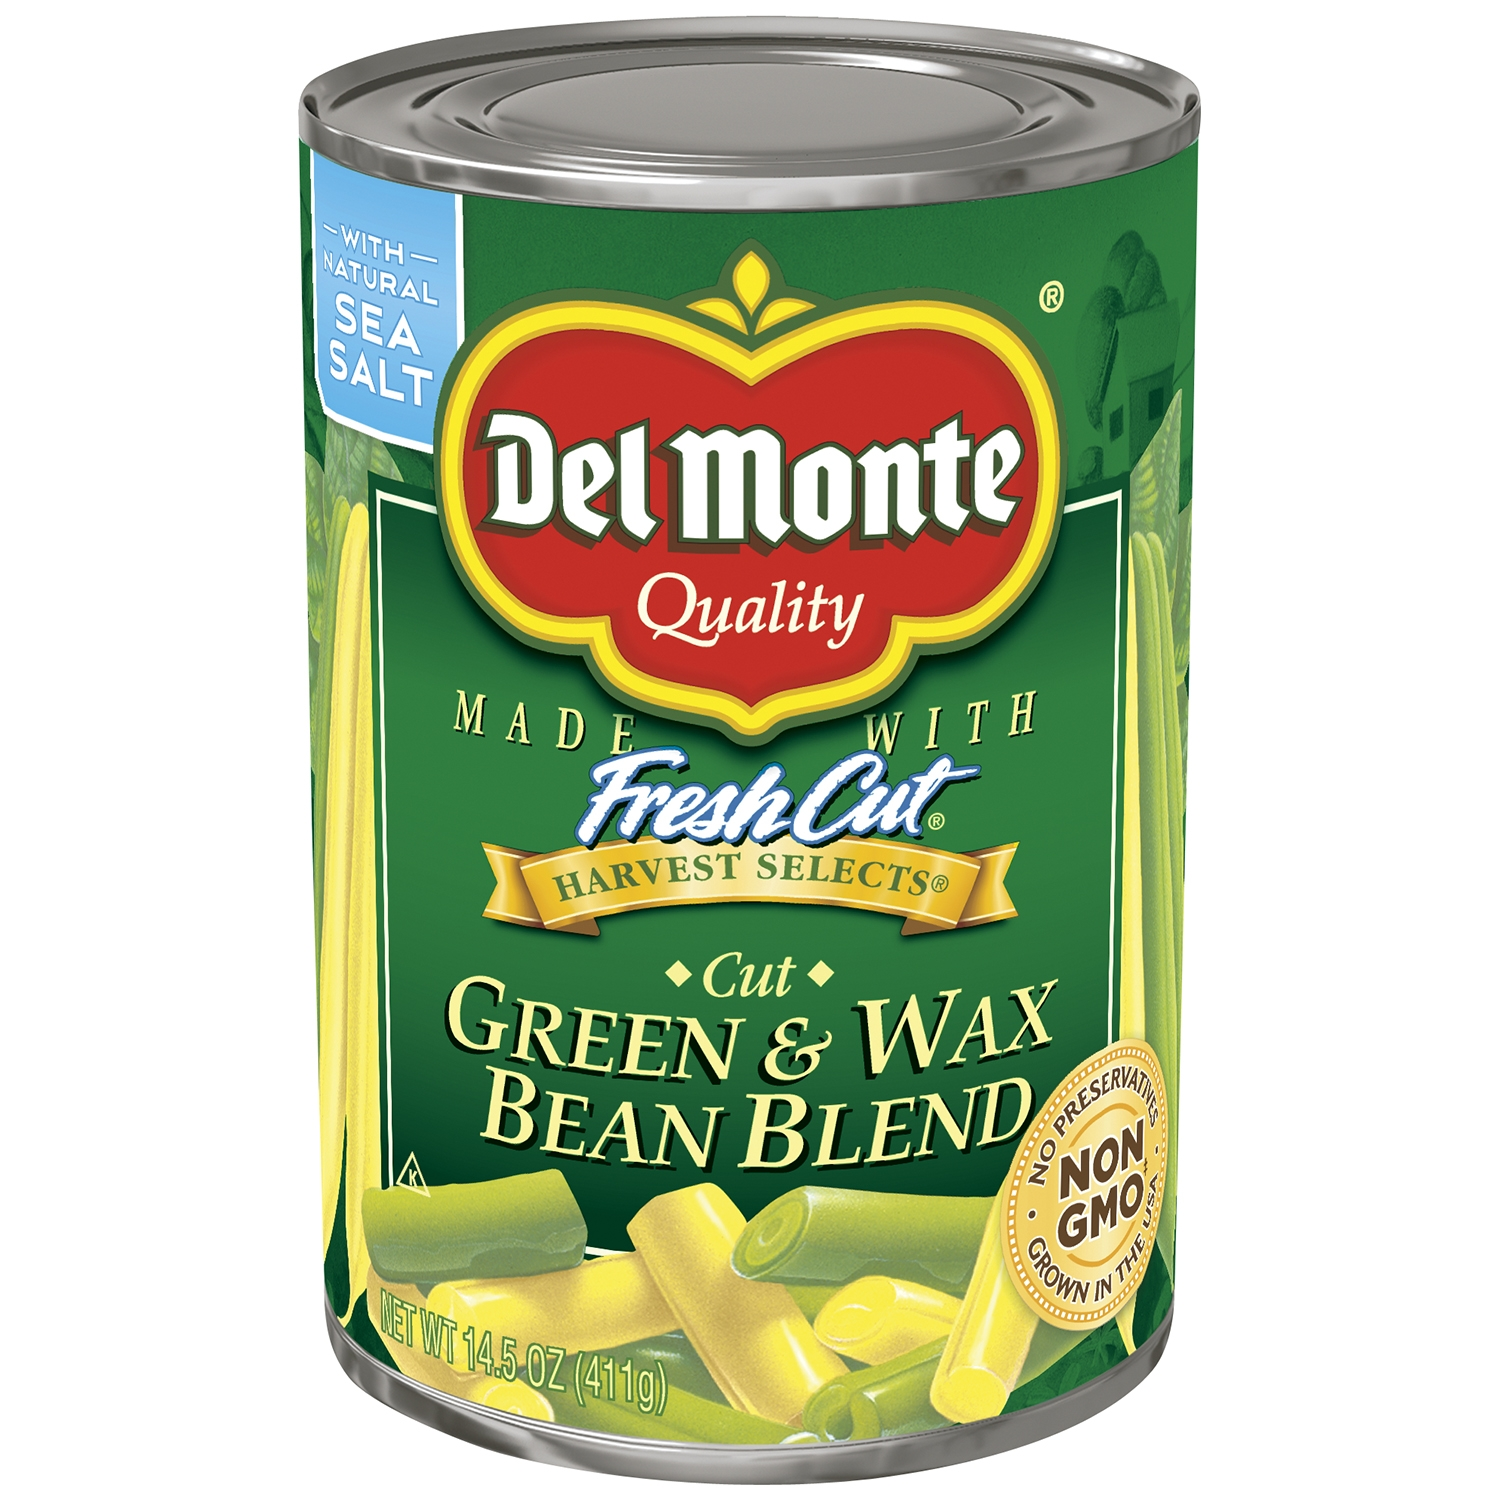 Del Monte Harvest Selects Cut Green & Wax Beans, 14.5 Oz